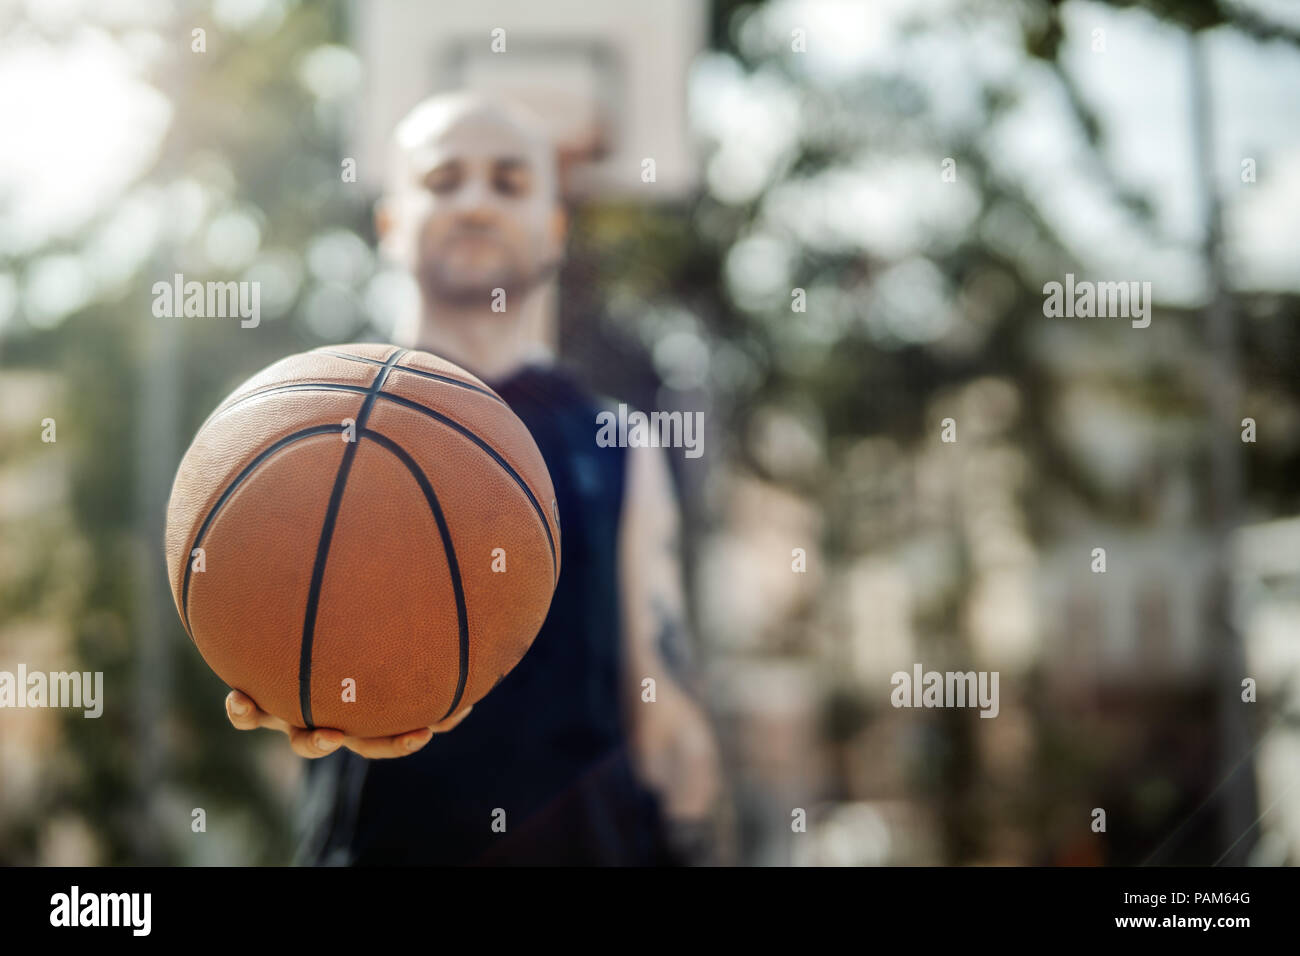 Close up of bald woman holding basket ball. Balle est sur le point de mire et de premier plan. L'homme, basket-ball et de conseil sont sur le contexte et floue. Banque D'Images